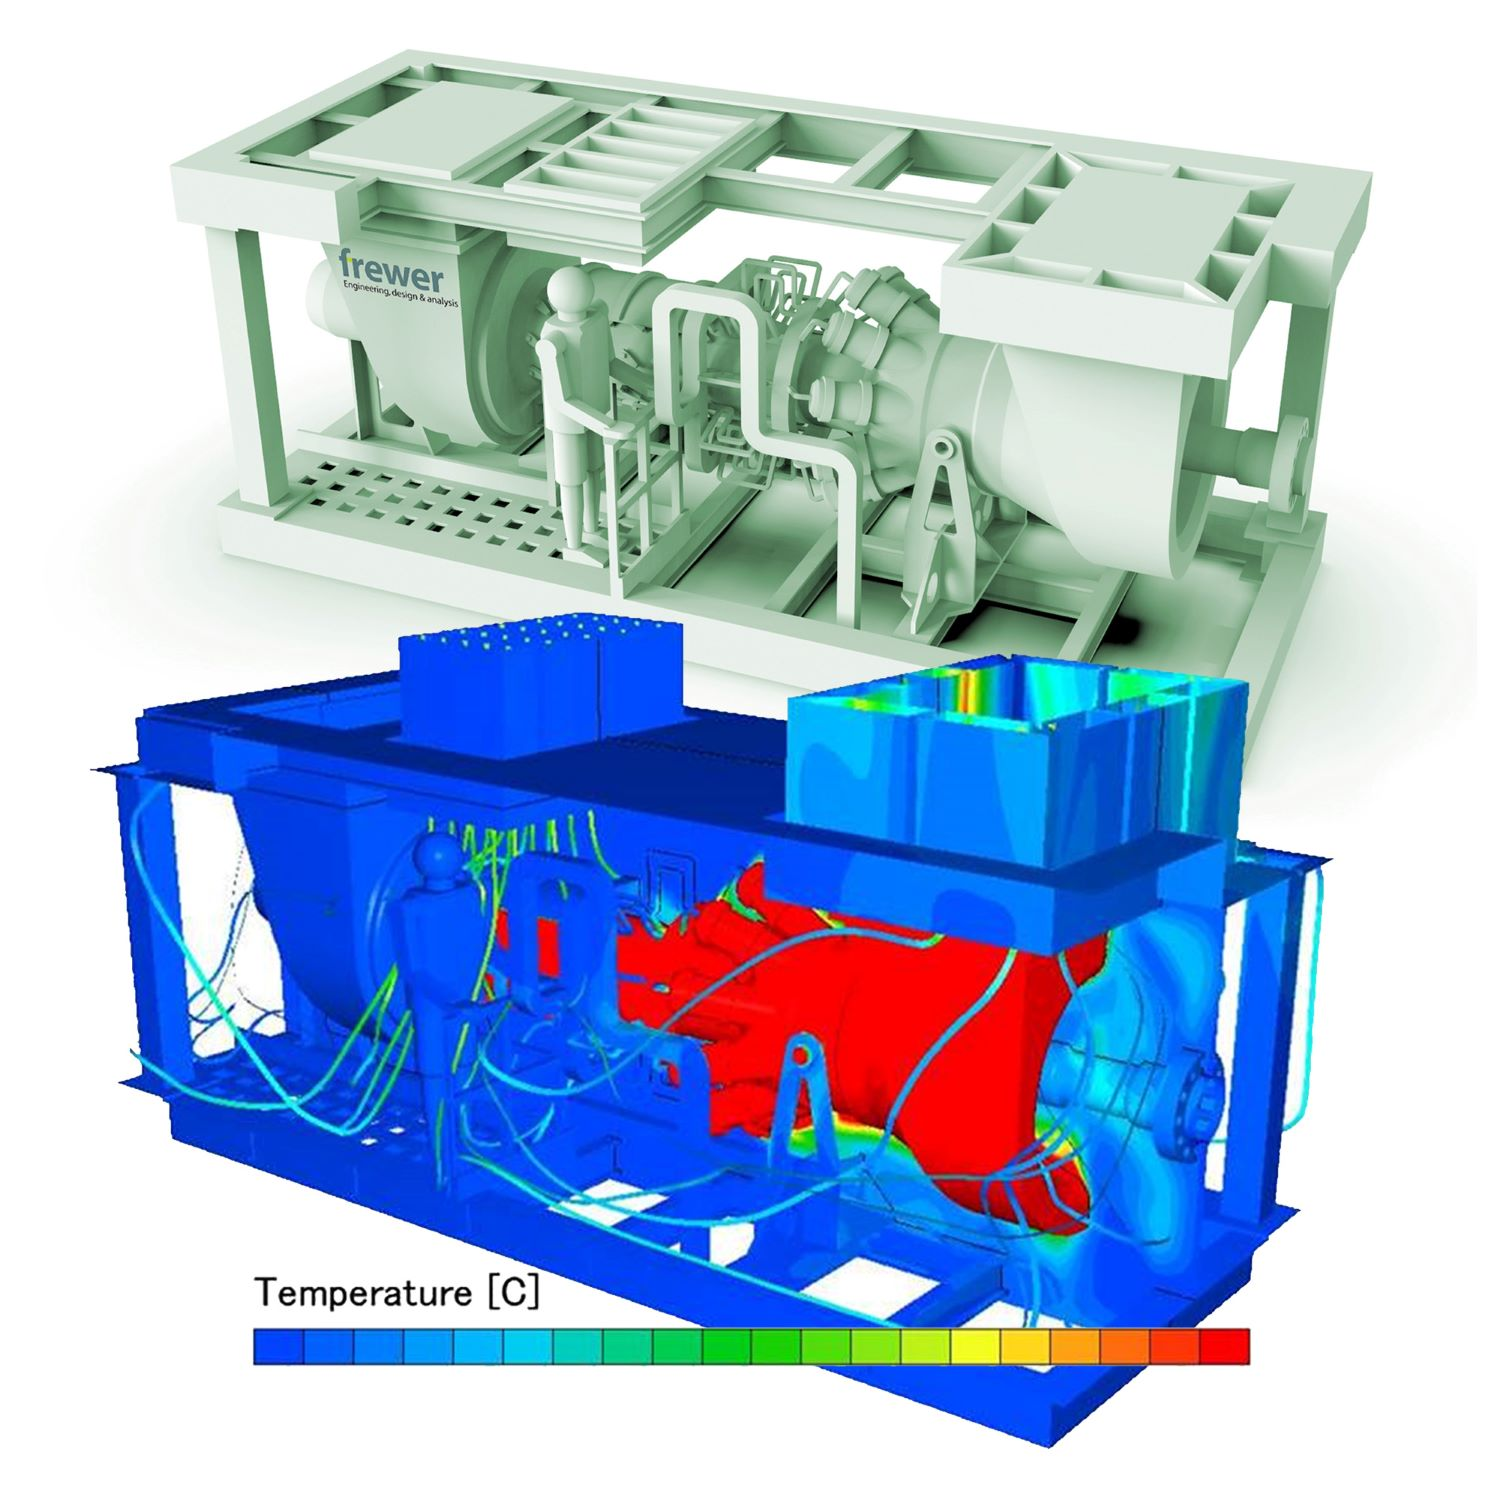 high-end gas turbine analysis services - ind GT